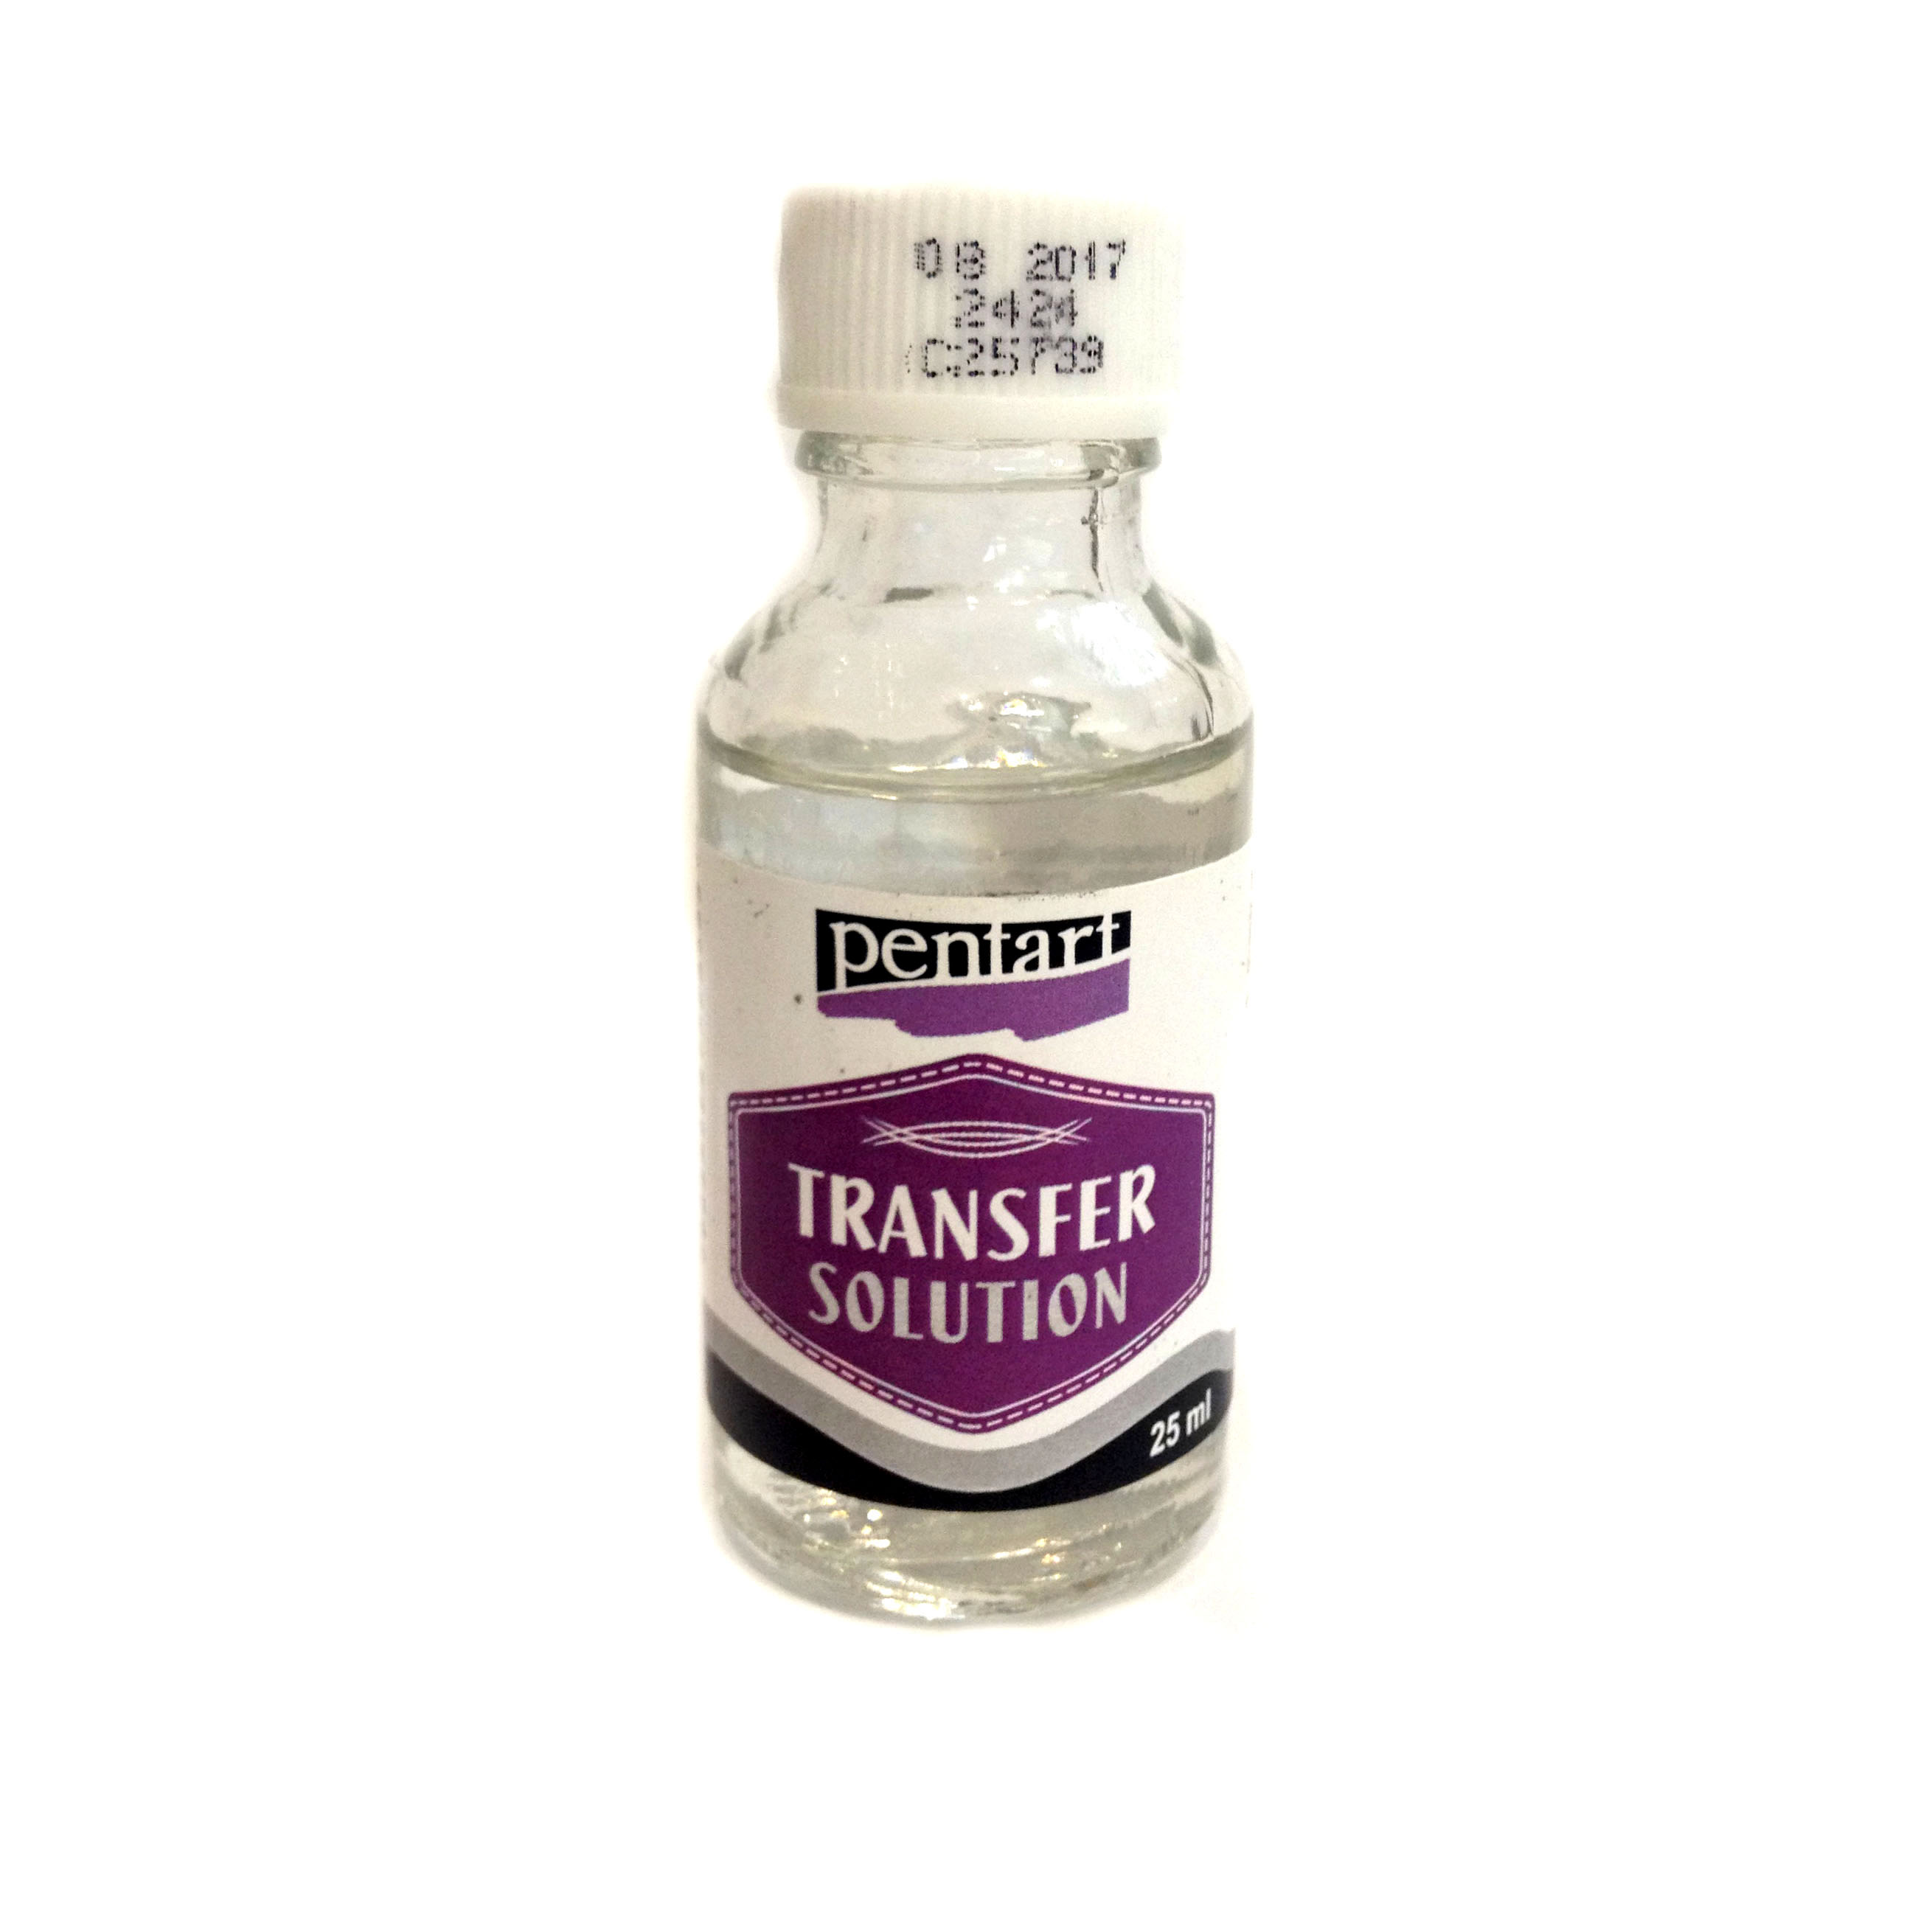 Ekspresni transfer PENTART - 25 ml